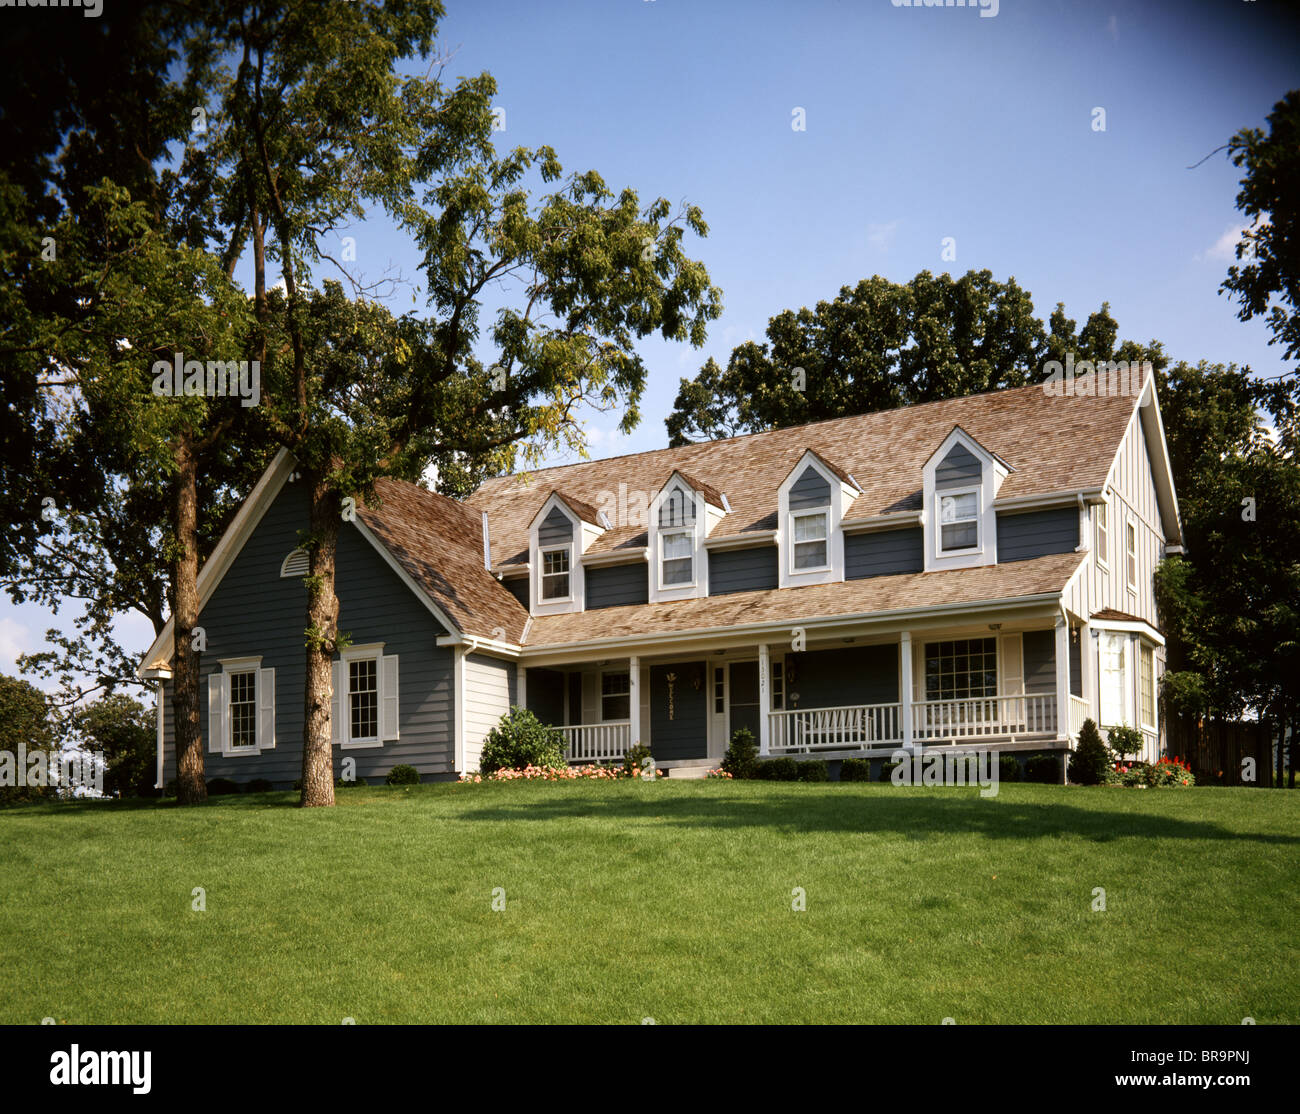 Front Porch Of Yellow House Stock Photo: GRAY TWO STORY HOUSE WITH FRONT PORCH FOUR DORMER STYLE